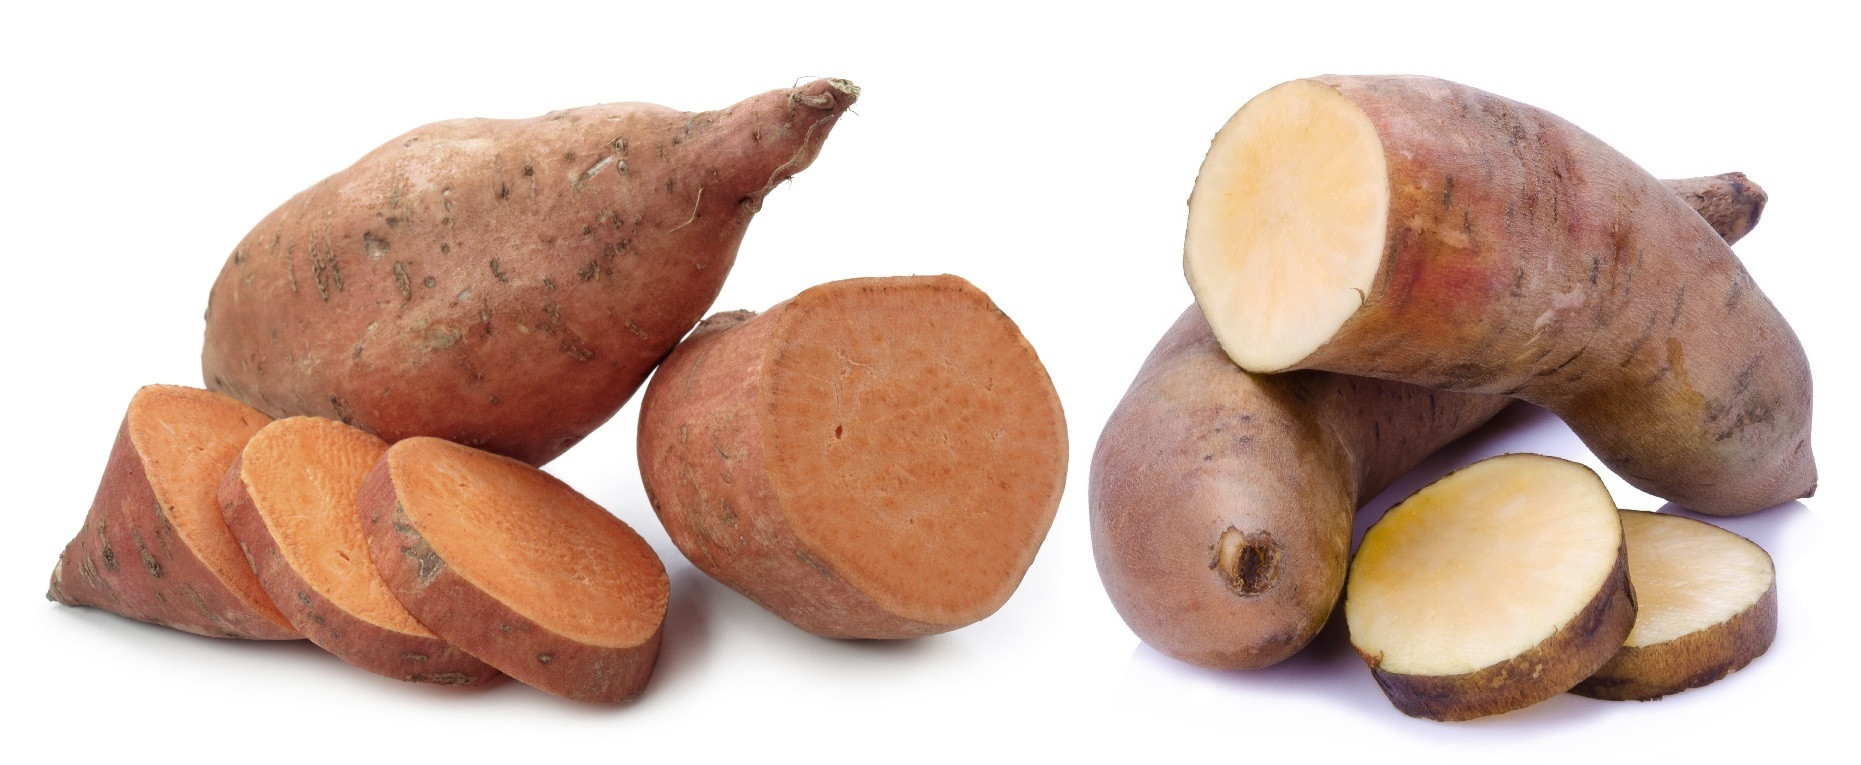 Yams Vs Sweet Potato  8 Ways to tell the difference between sweet potatoes and yams